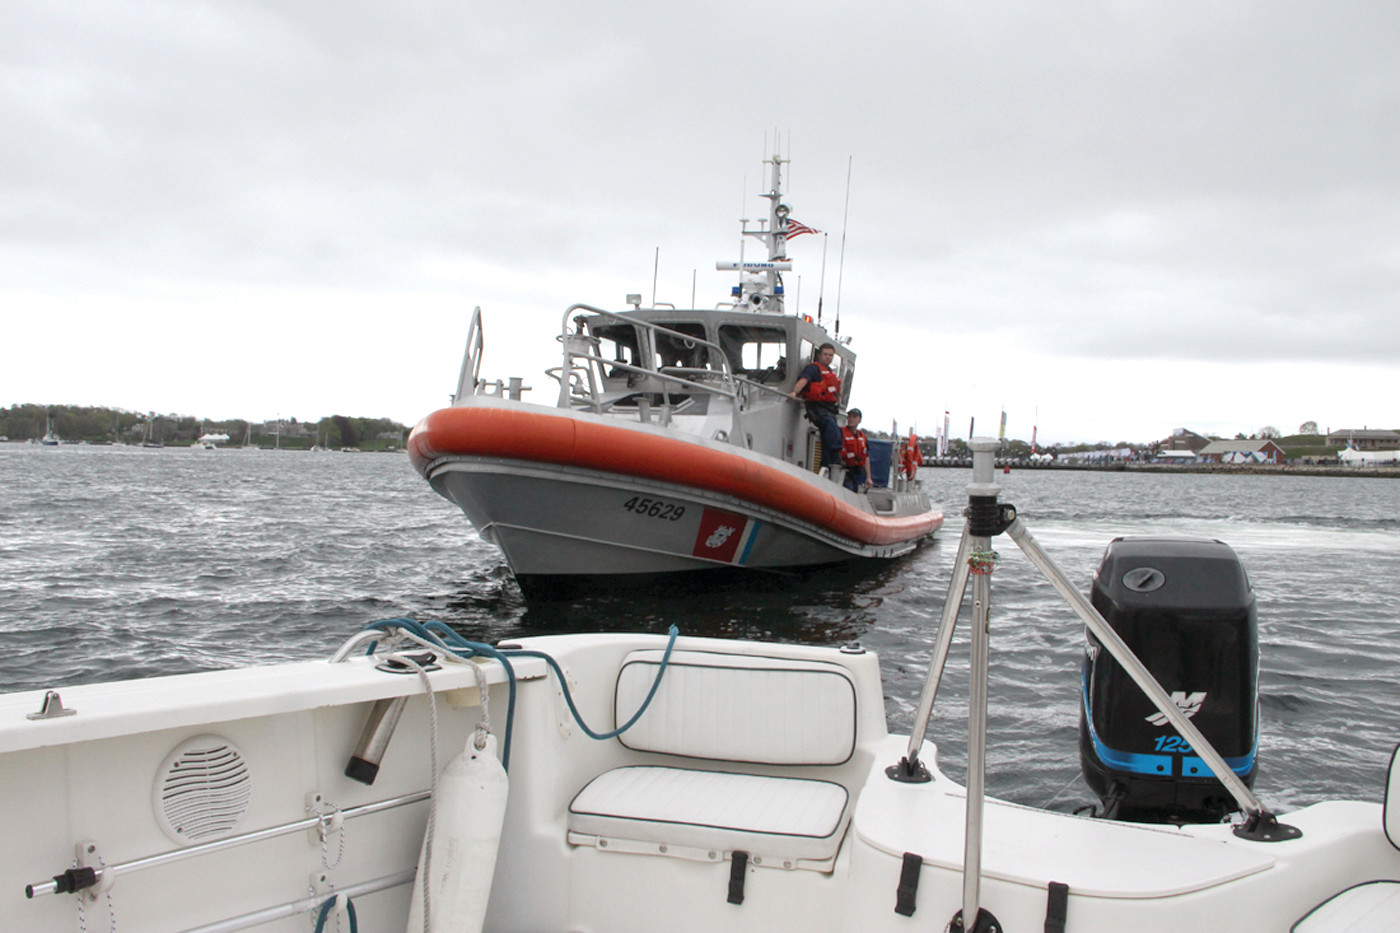 READY TO BOARD: A Coast Guard vessel was in our wake, preparing to board.